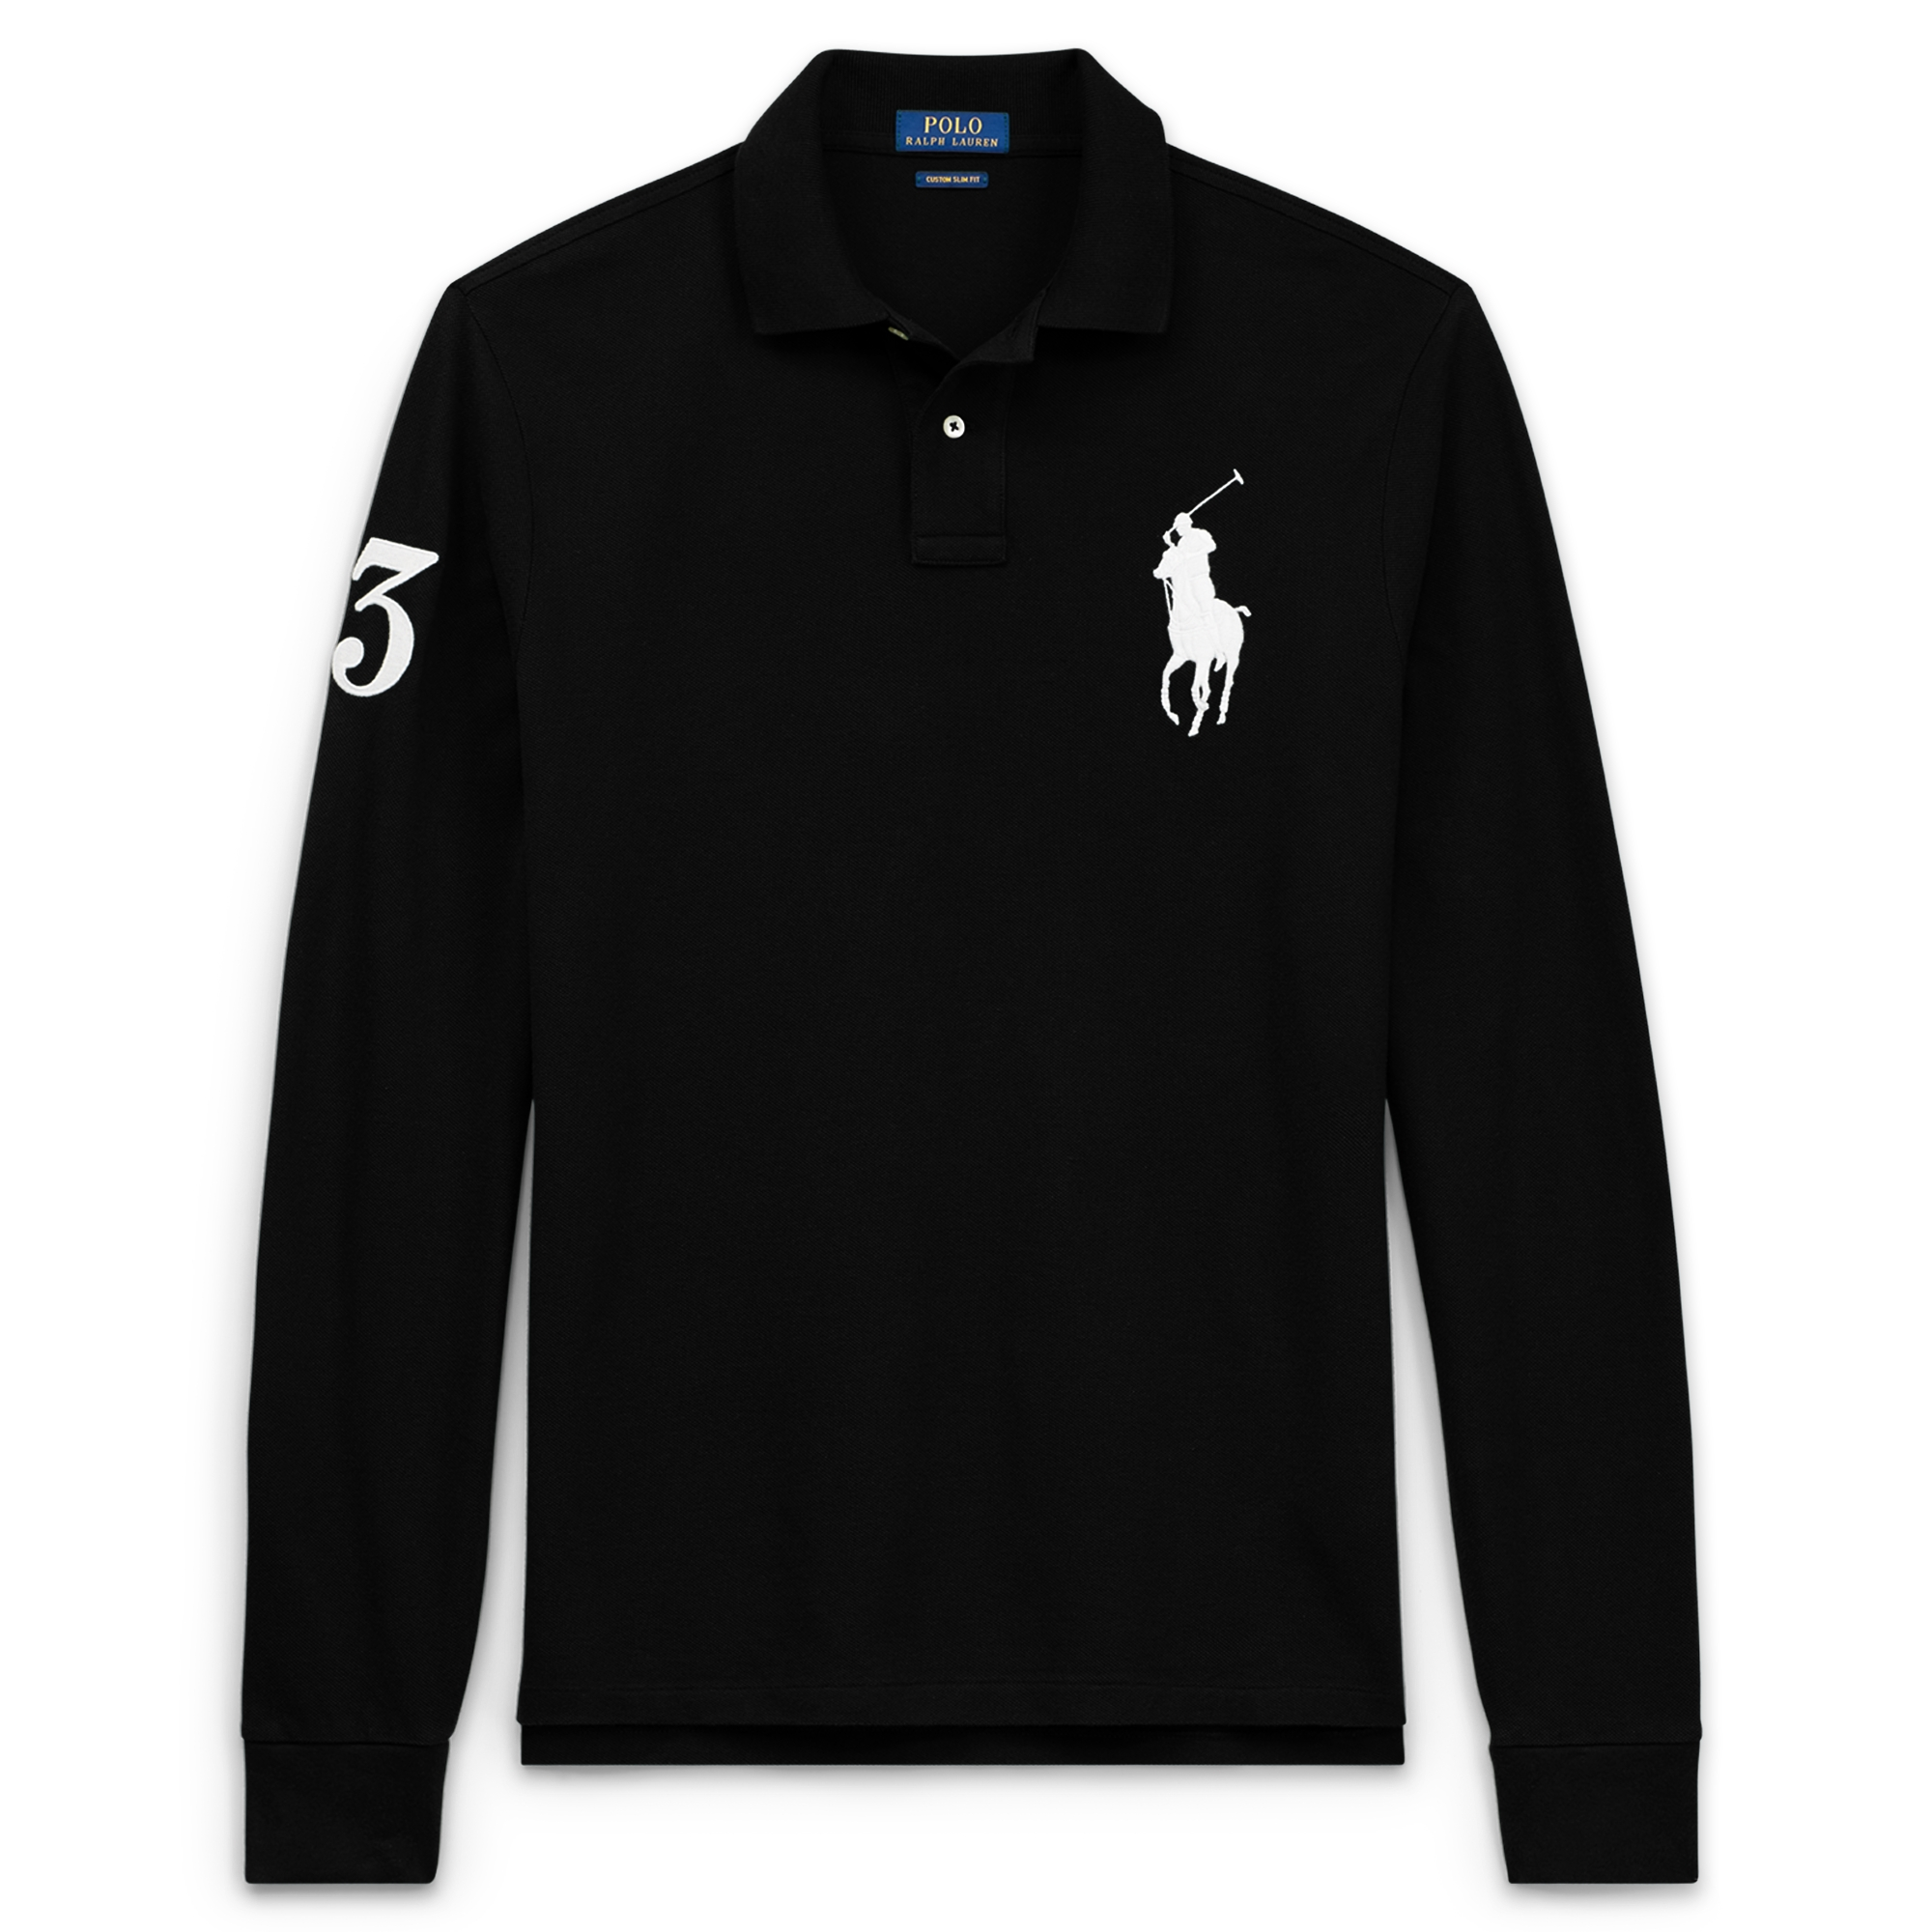 Customizable Ralph Lauren Polo Shirts